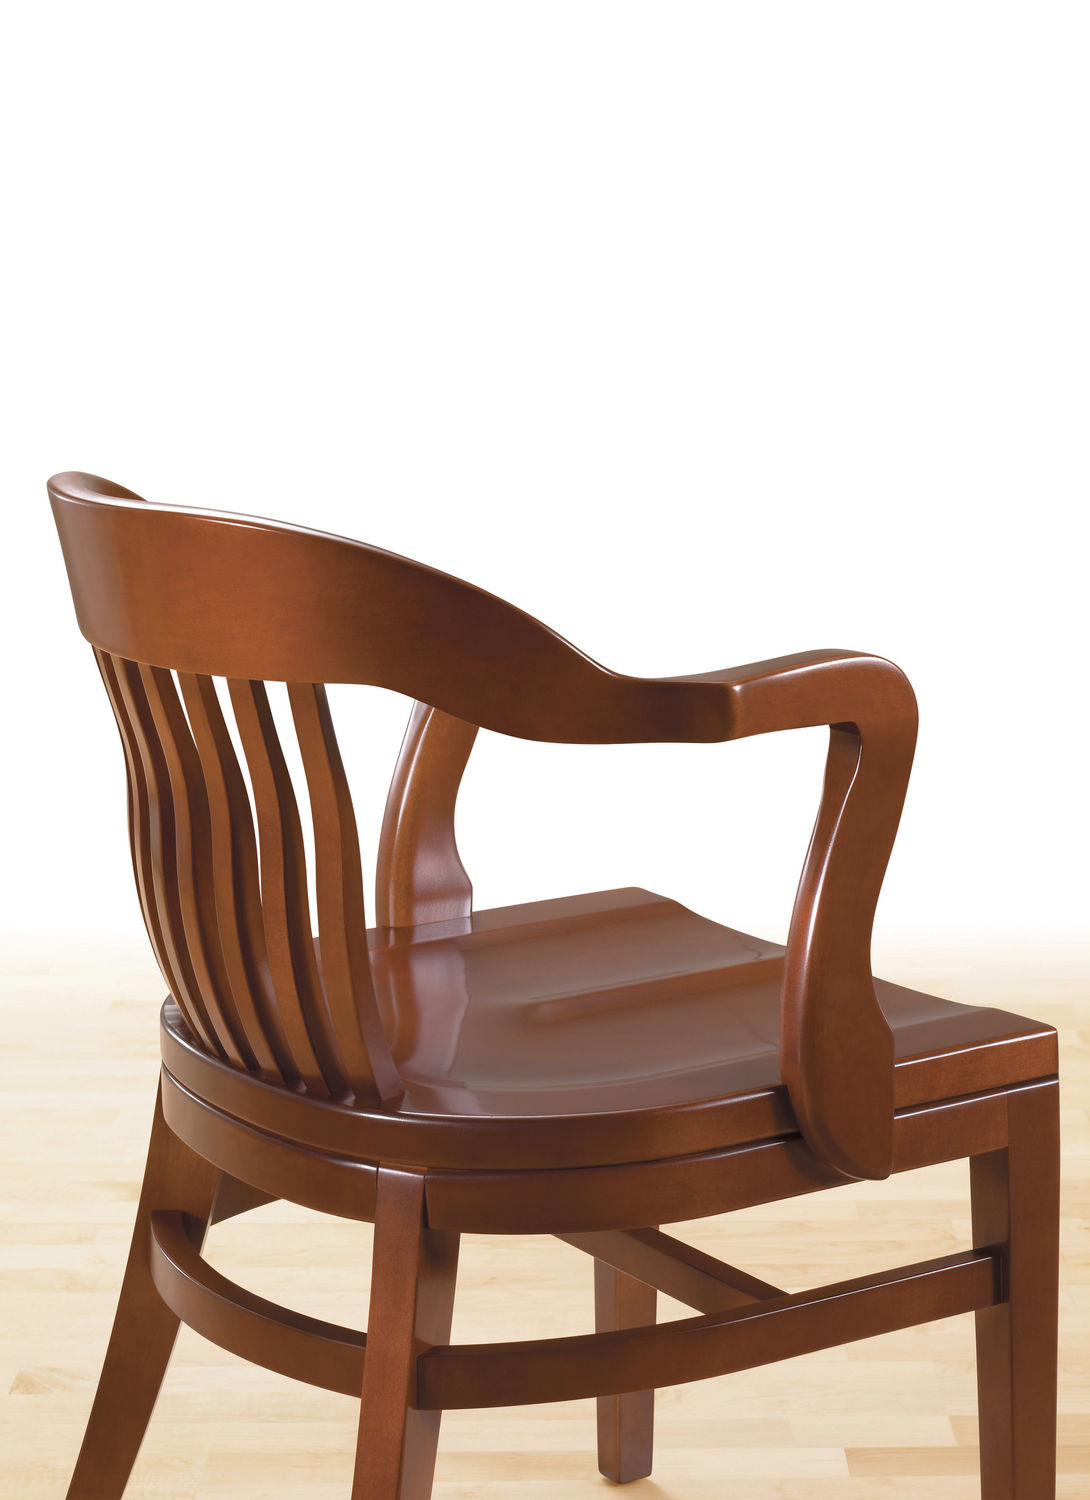 Phenomenal Classic Visitor Chair Upholstered With Armrests Pdpeps Interior Chair Design Pdpepsorg